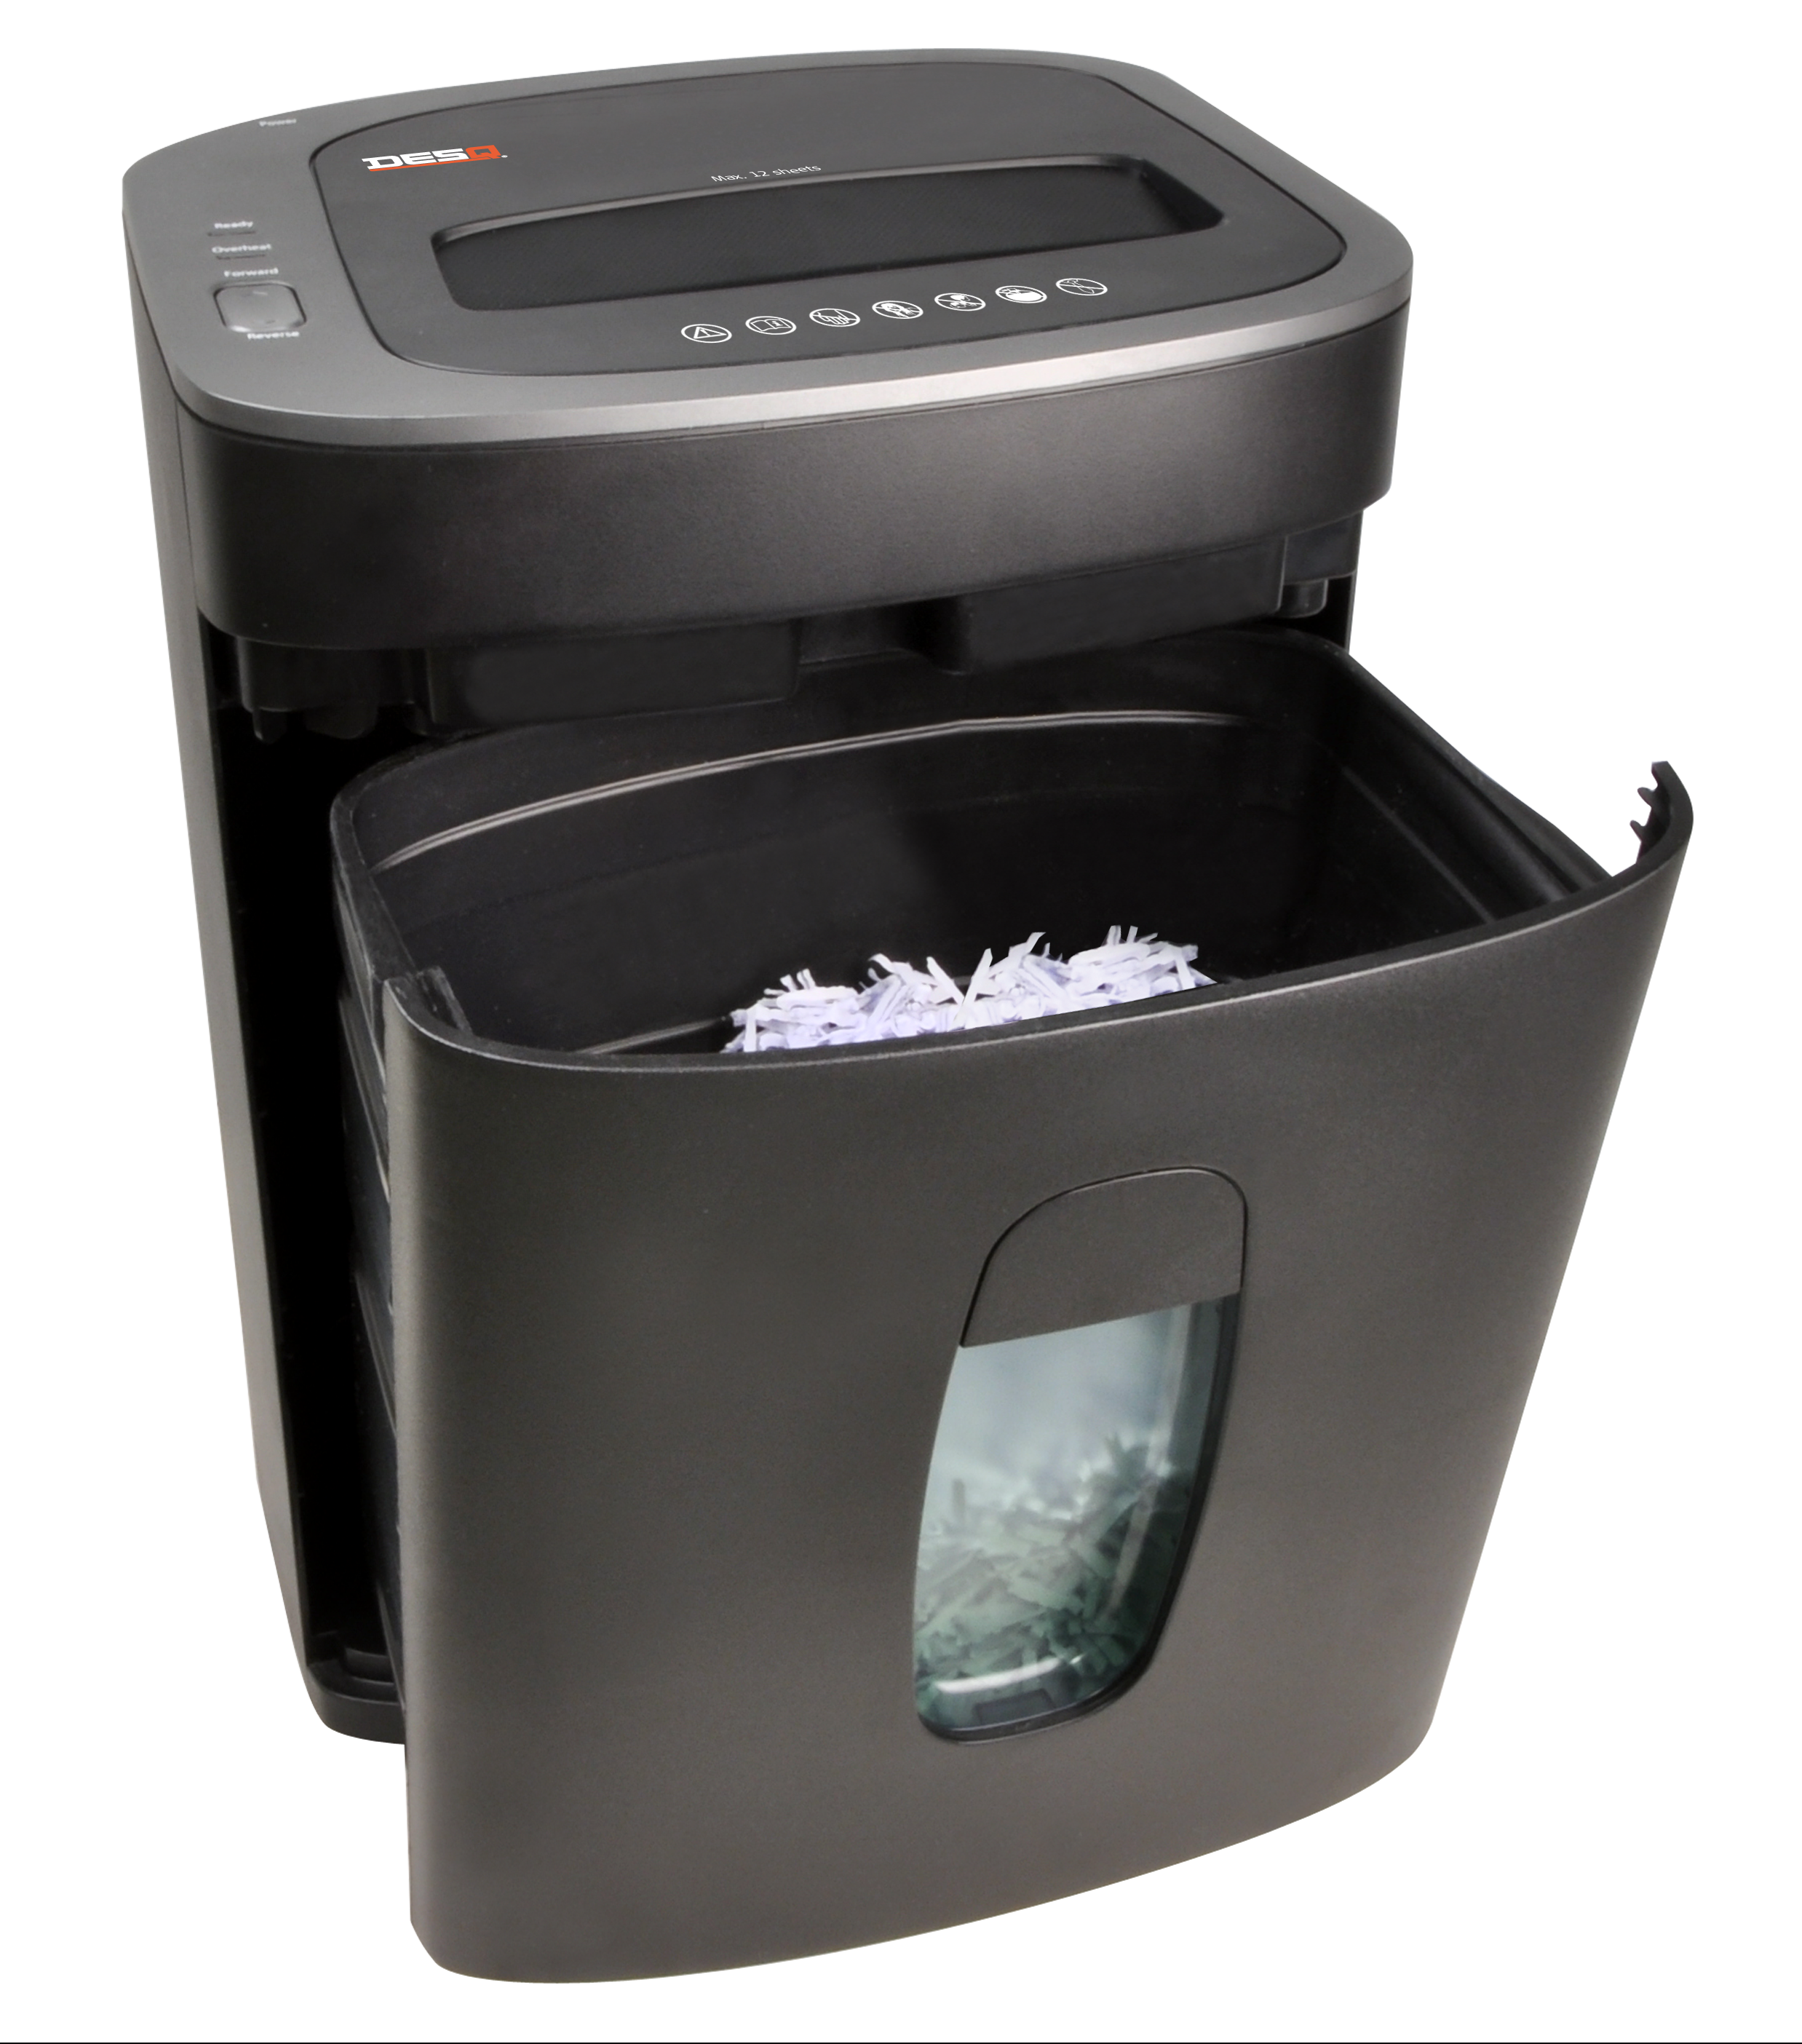 office max paper shredder That's why getting the best deal for any products will take a little time and effortthe good news is you come to the right website, we give you the best deal for officemax 10-sheet micro-cut shredder om02750, so you don't have to do shop around to get the best deal.